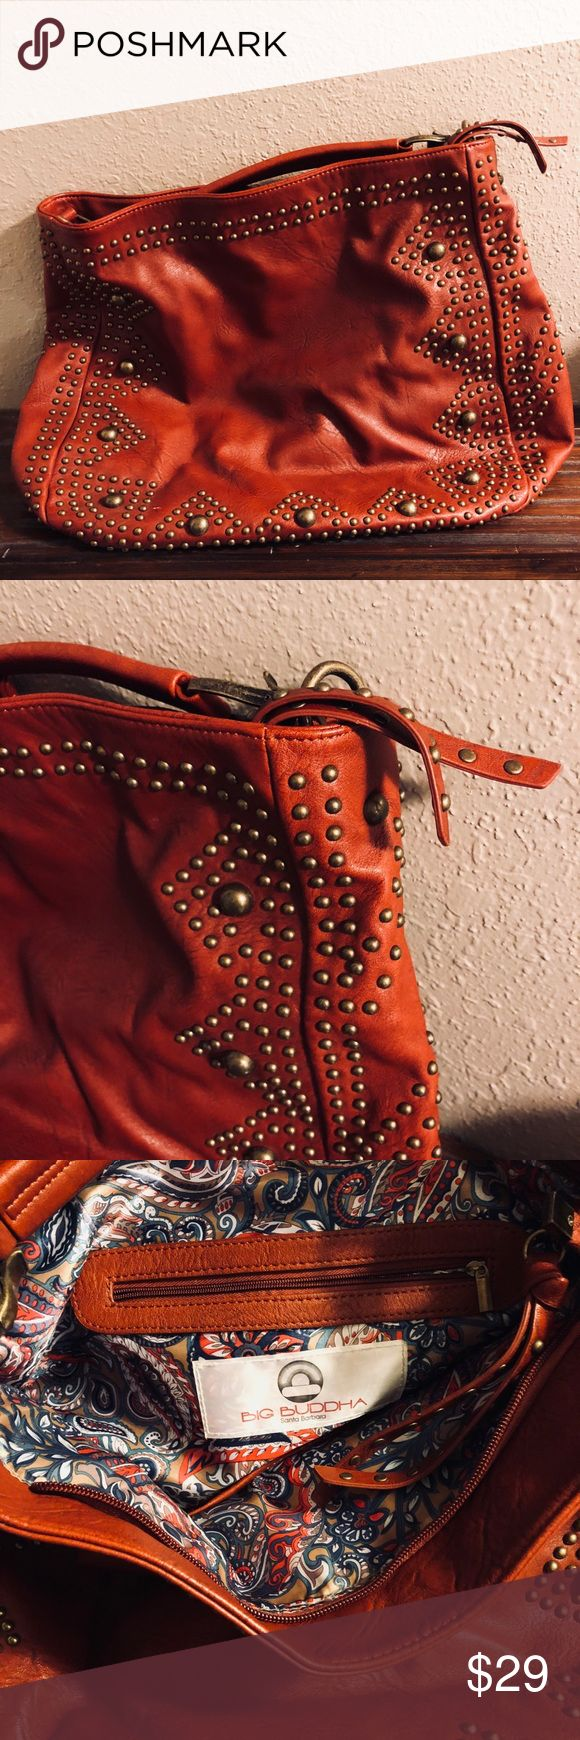 Big Buddha Rusty Red Satchel with Studded front The richest rusty red color! Big Buddha brand. Brassy stud detail. This is definitely a larger bag. Great as a carryon. See photos for texture details. Big Buddha Bags Hobos